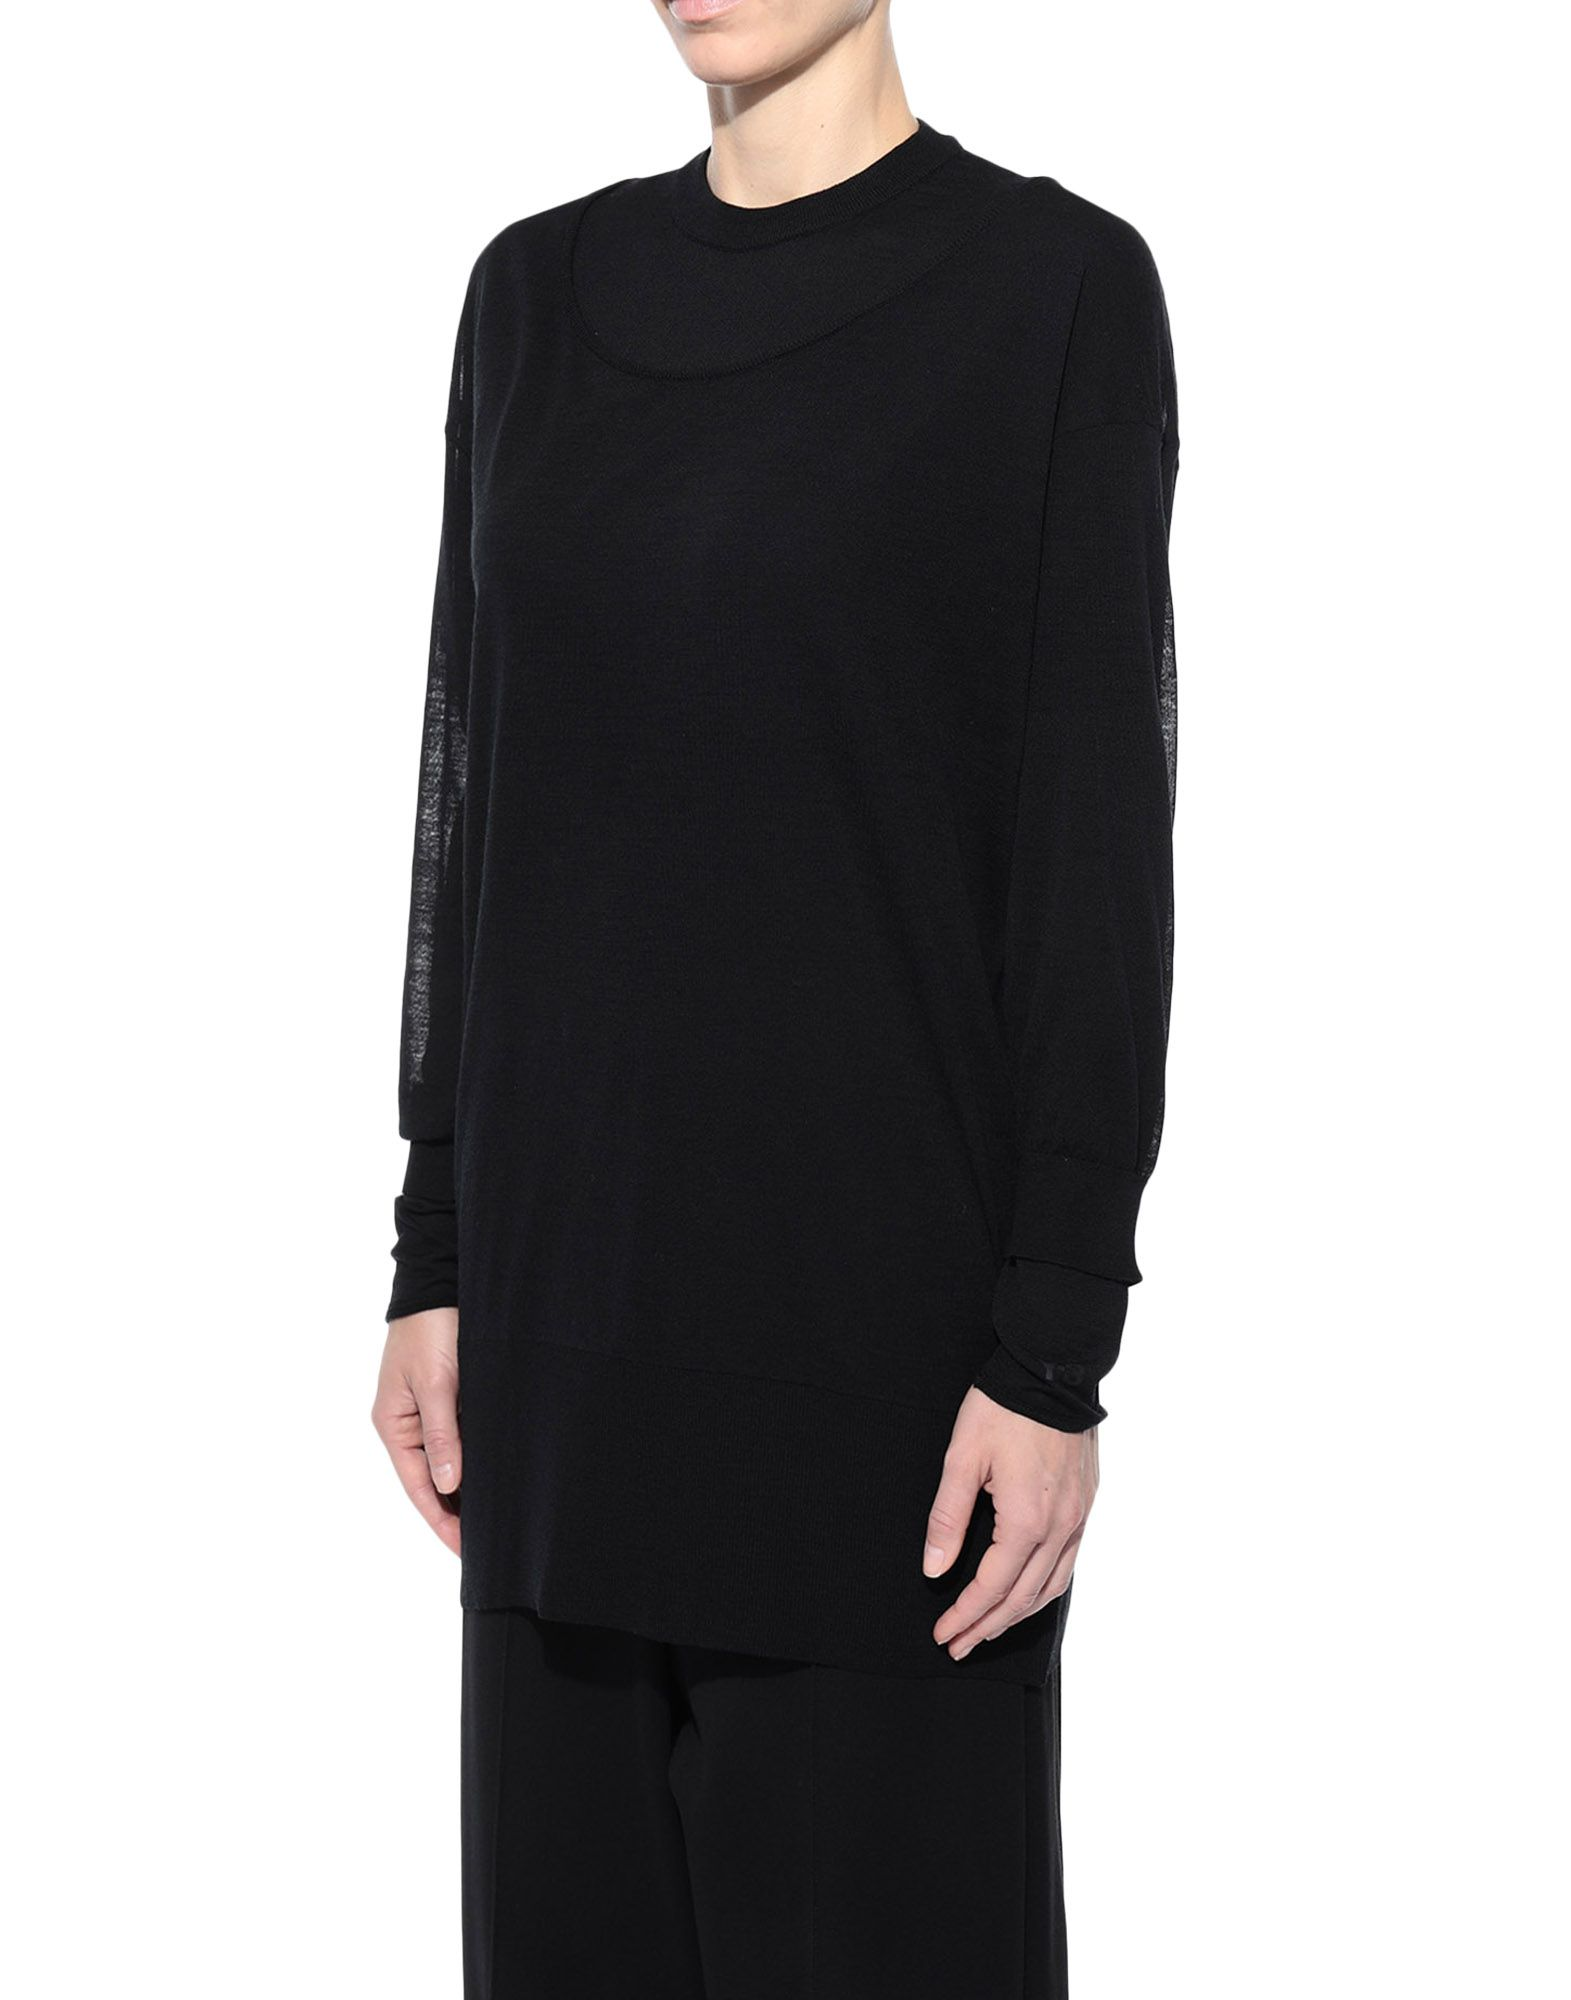 Y-3 Y-3 Layered Knitted Long Sweater Long sleeve sweater Woman e